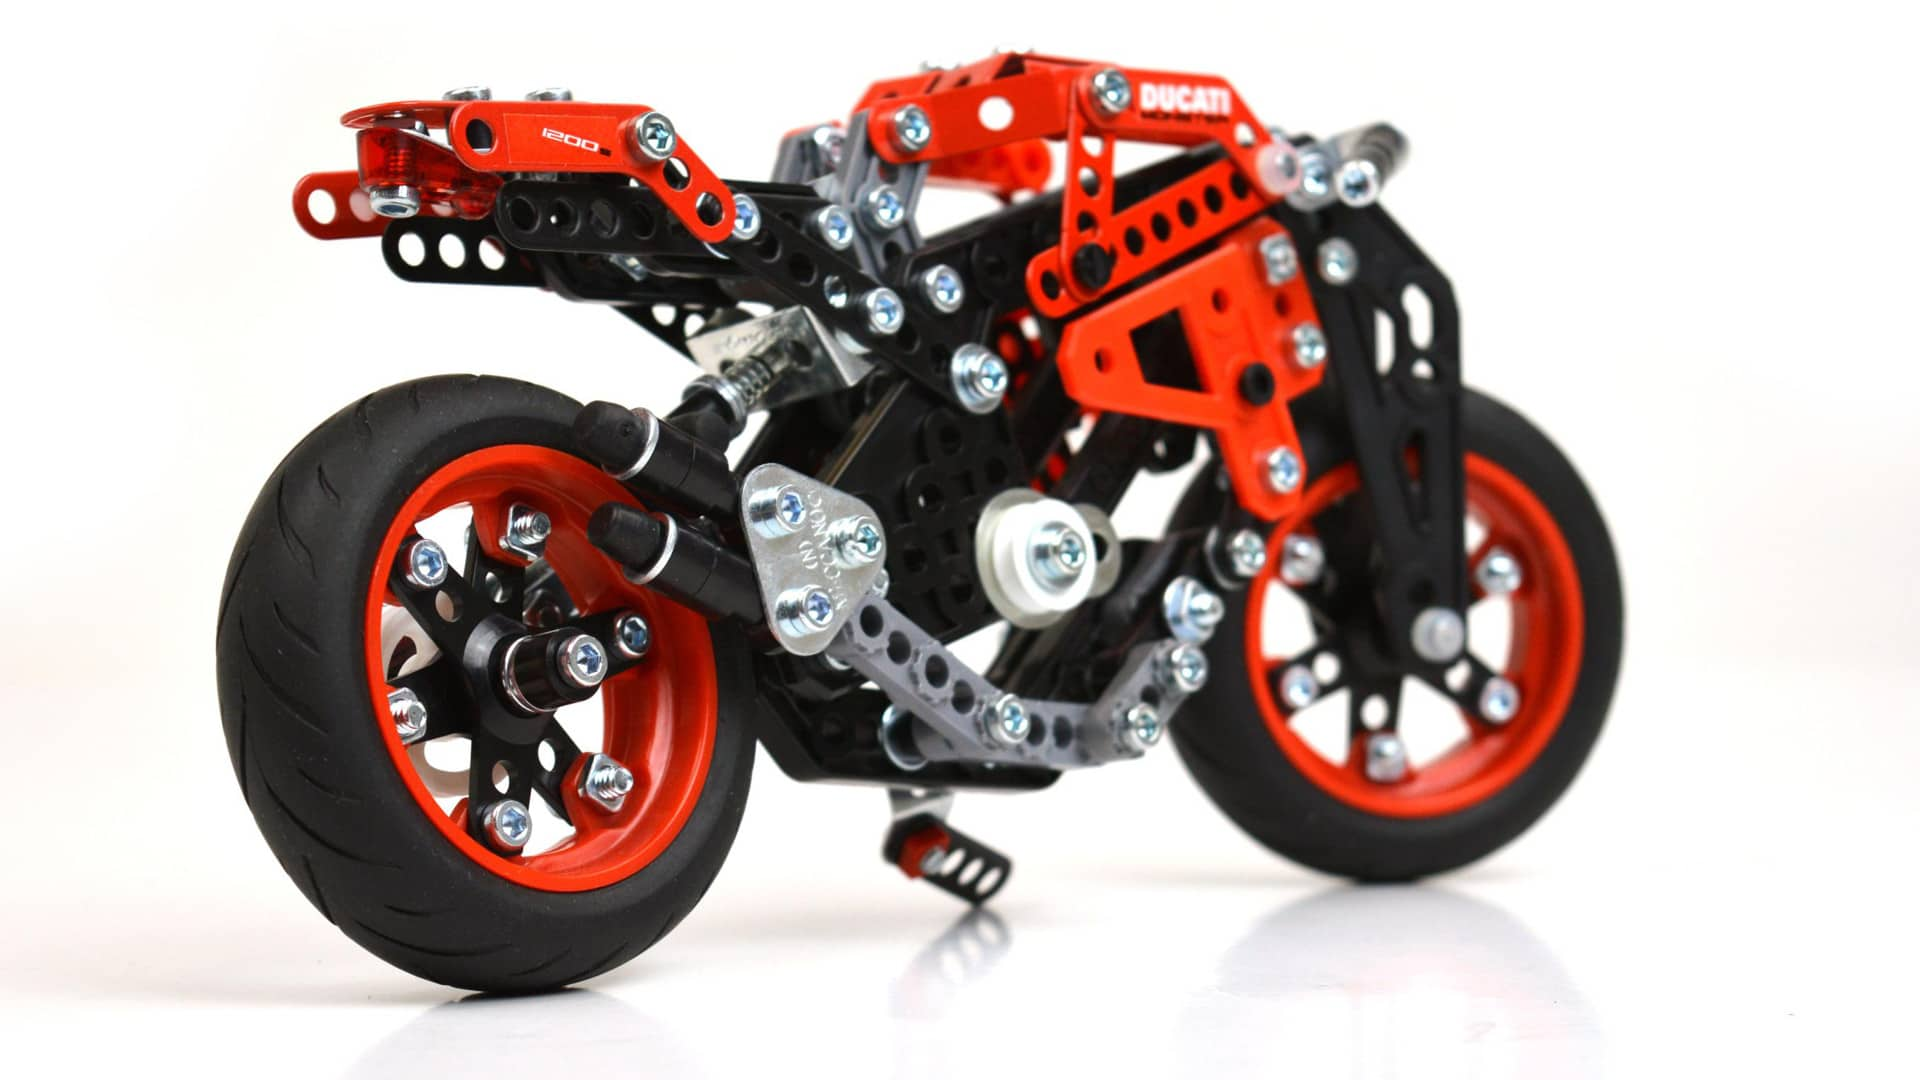 Ducati Monster 1200 Meccano Set